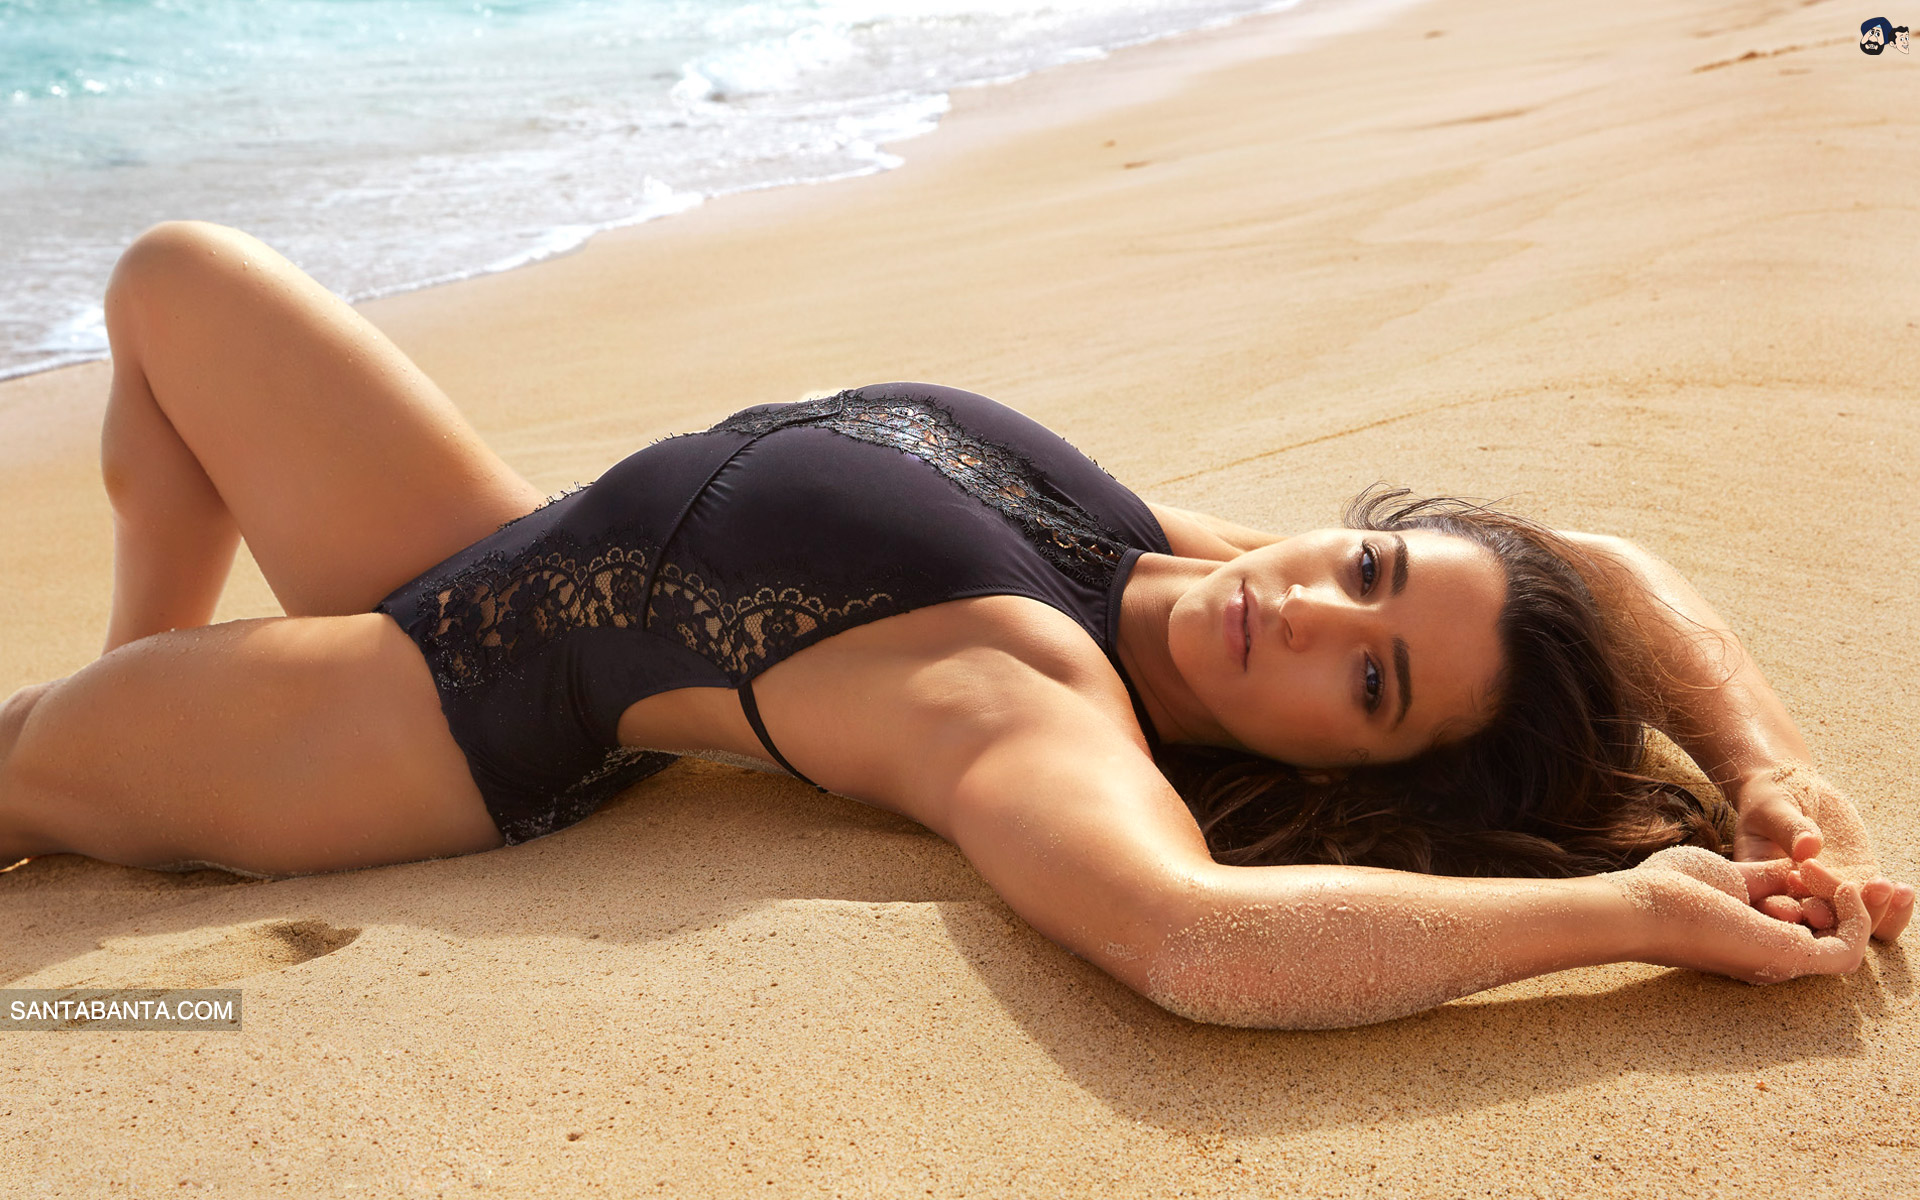 Aly Raisman hot in beach pic